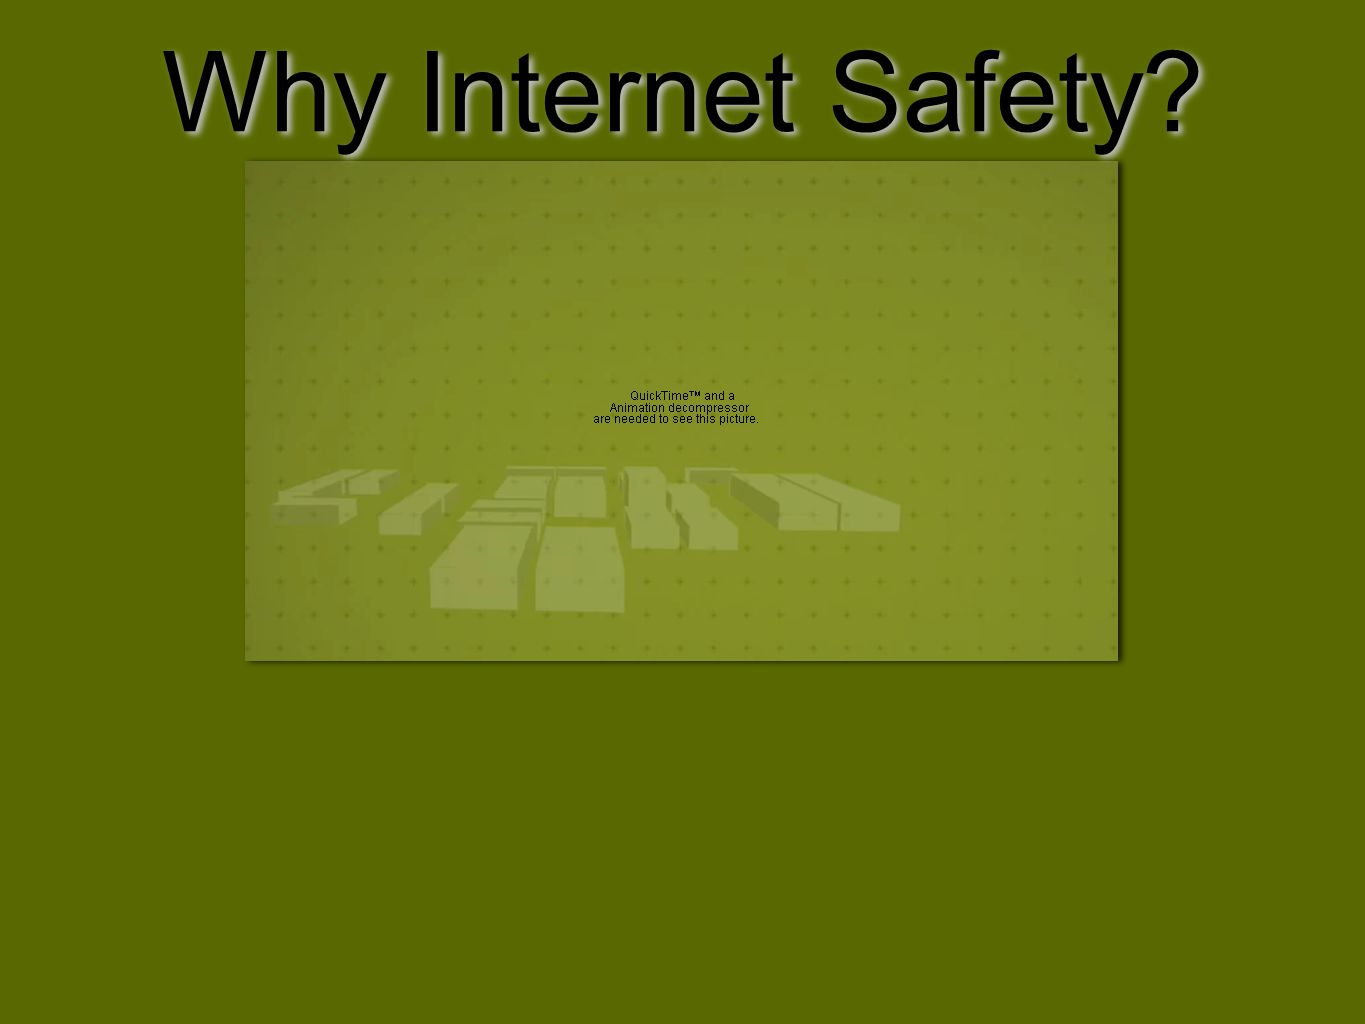 Why Internet Safety